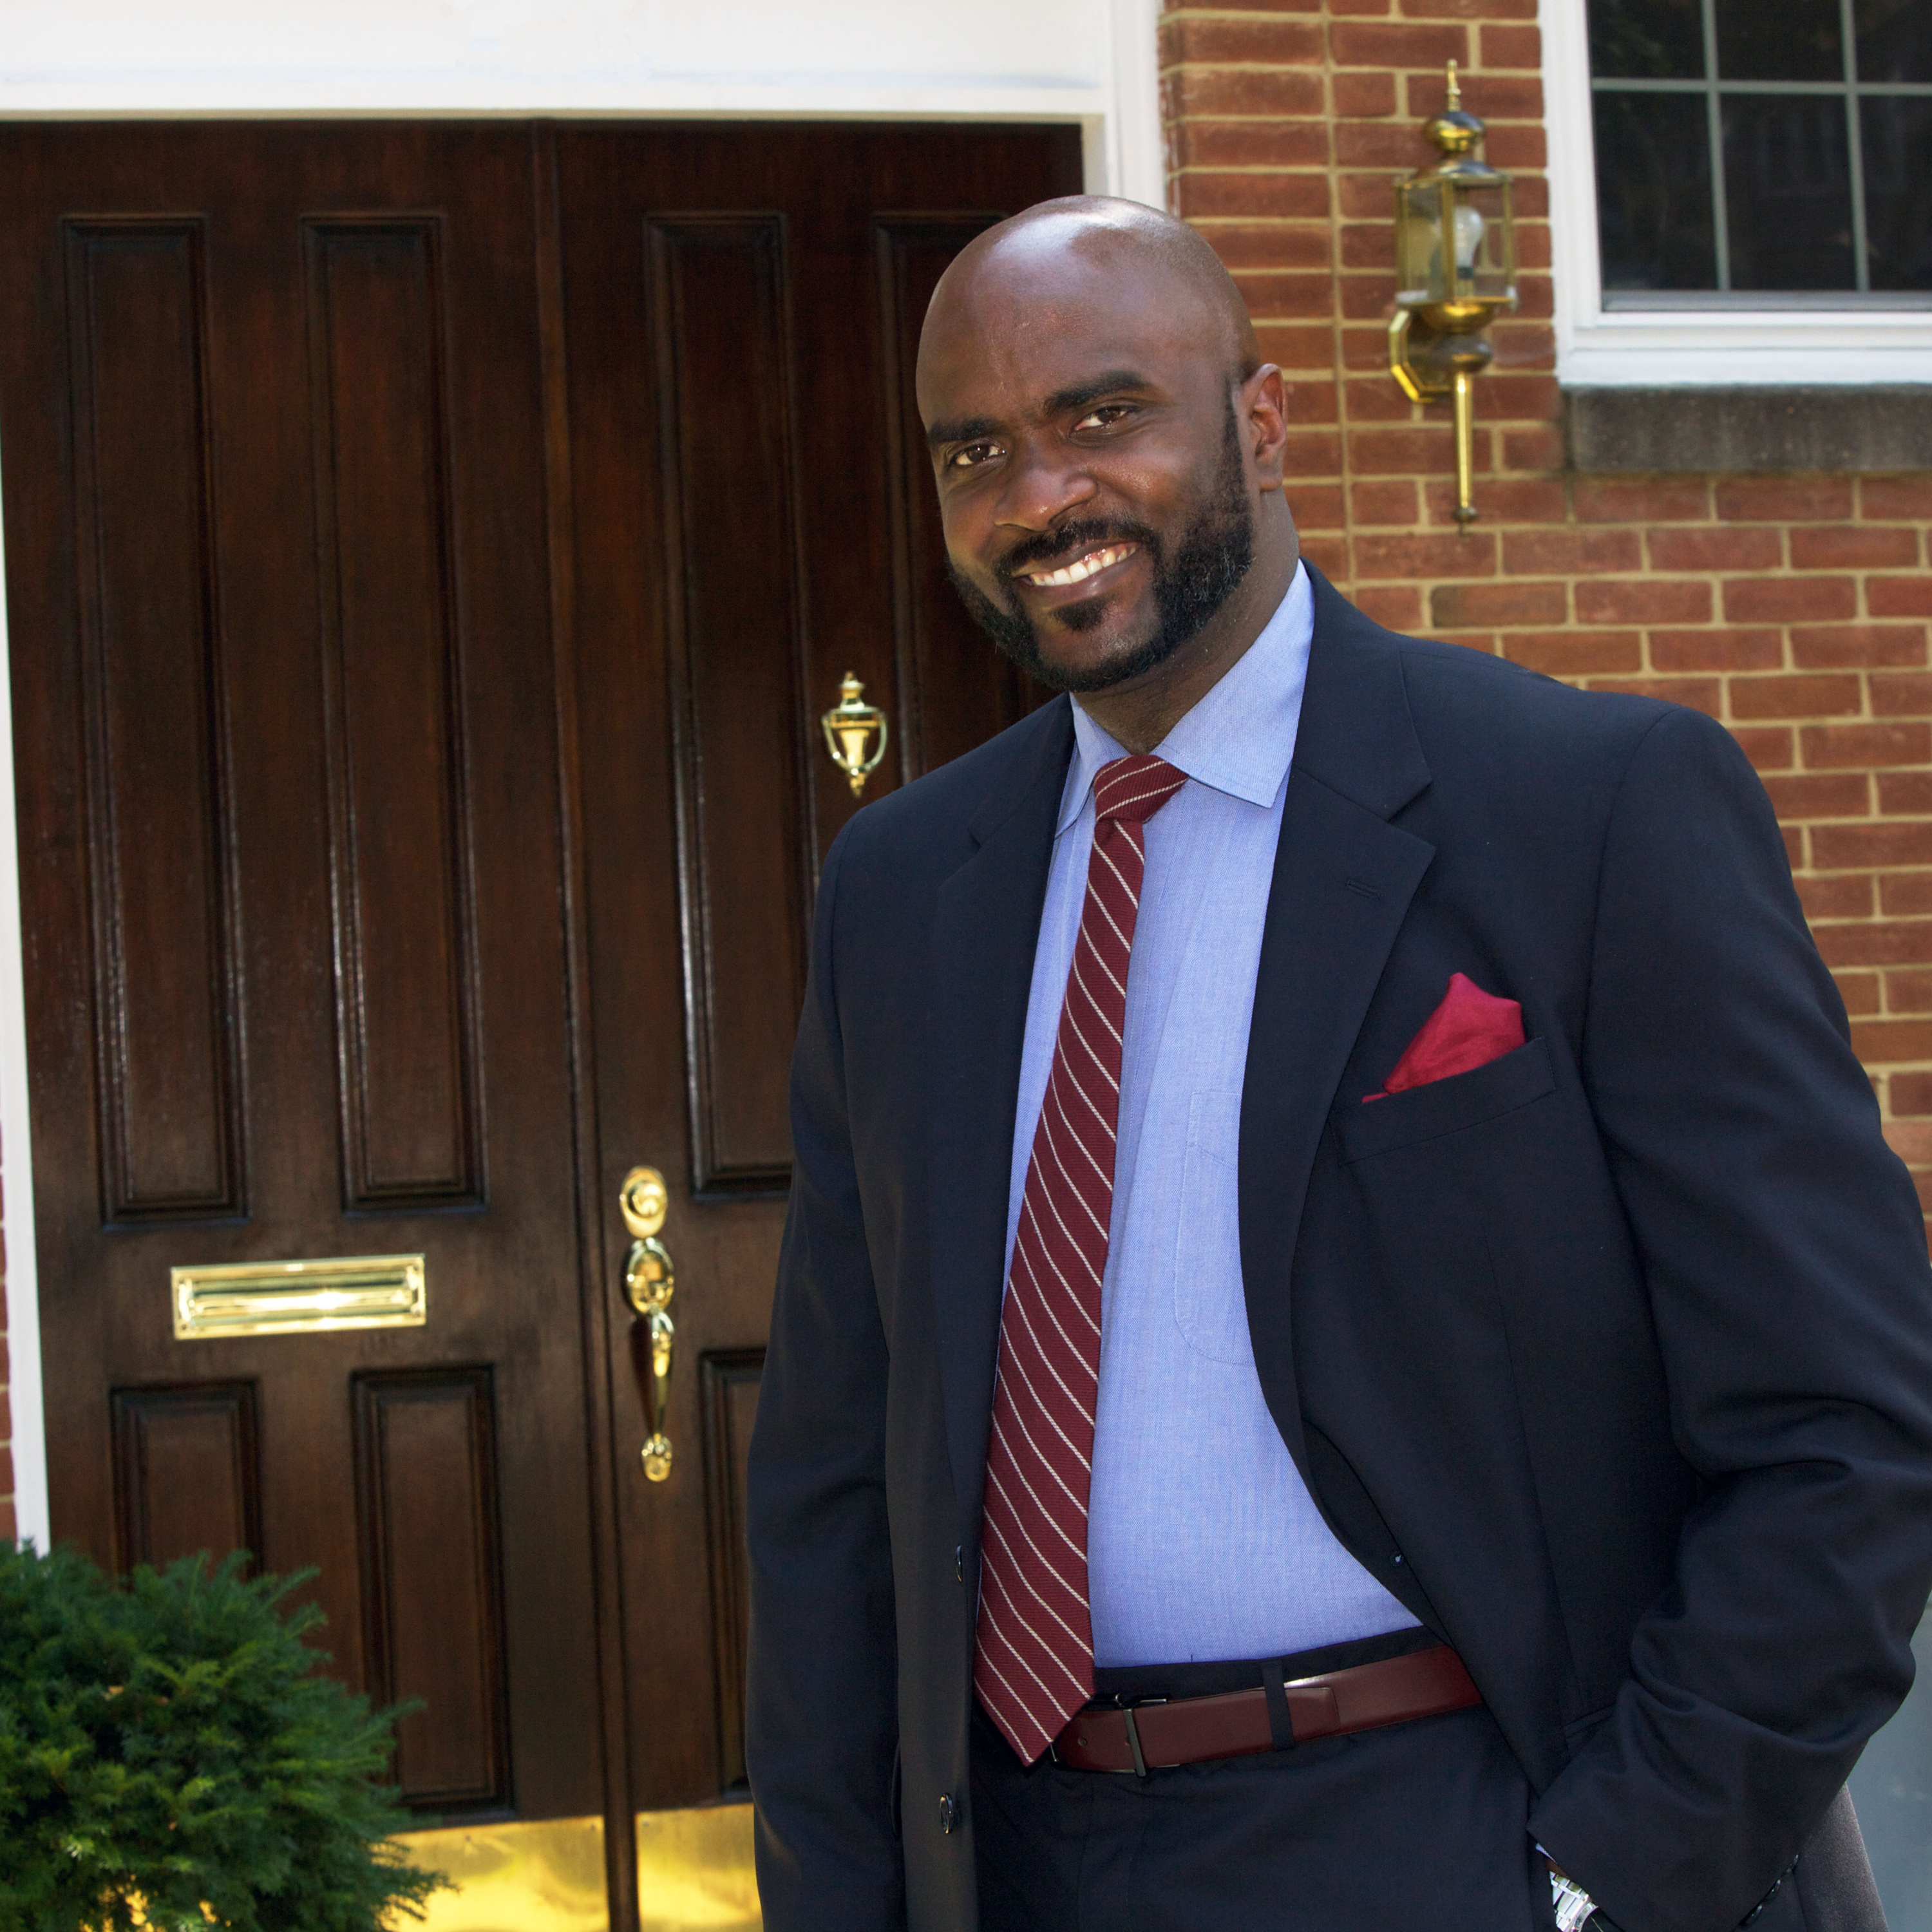 Episode 1: Through the Keyhole with Keith A. Beasley featuring Jameel Scott